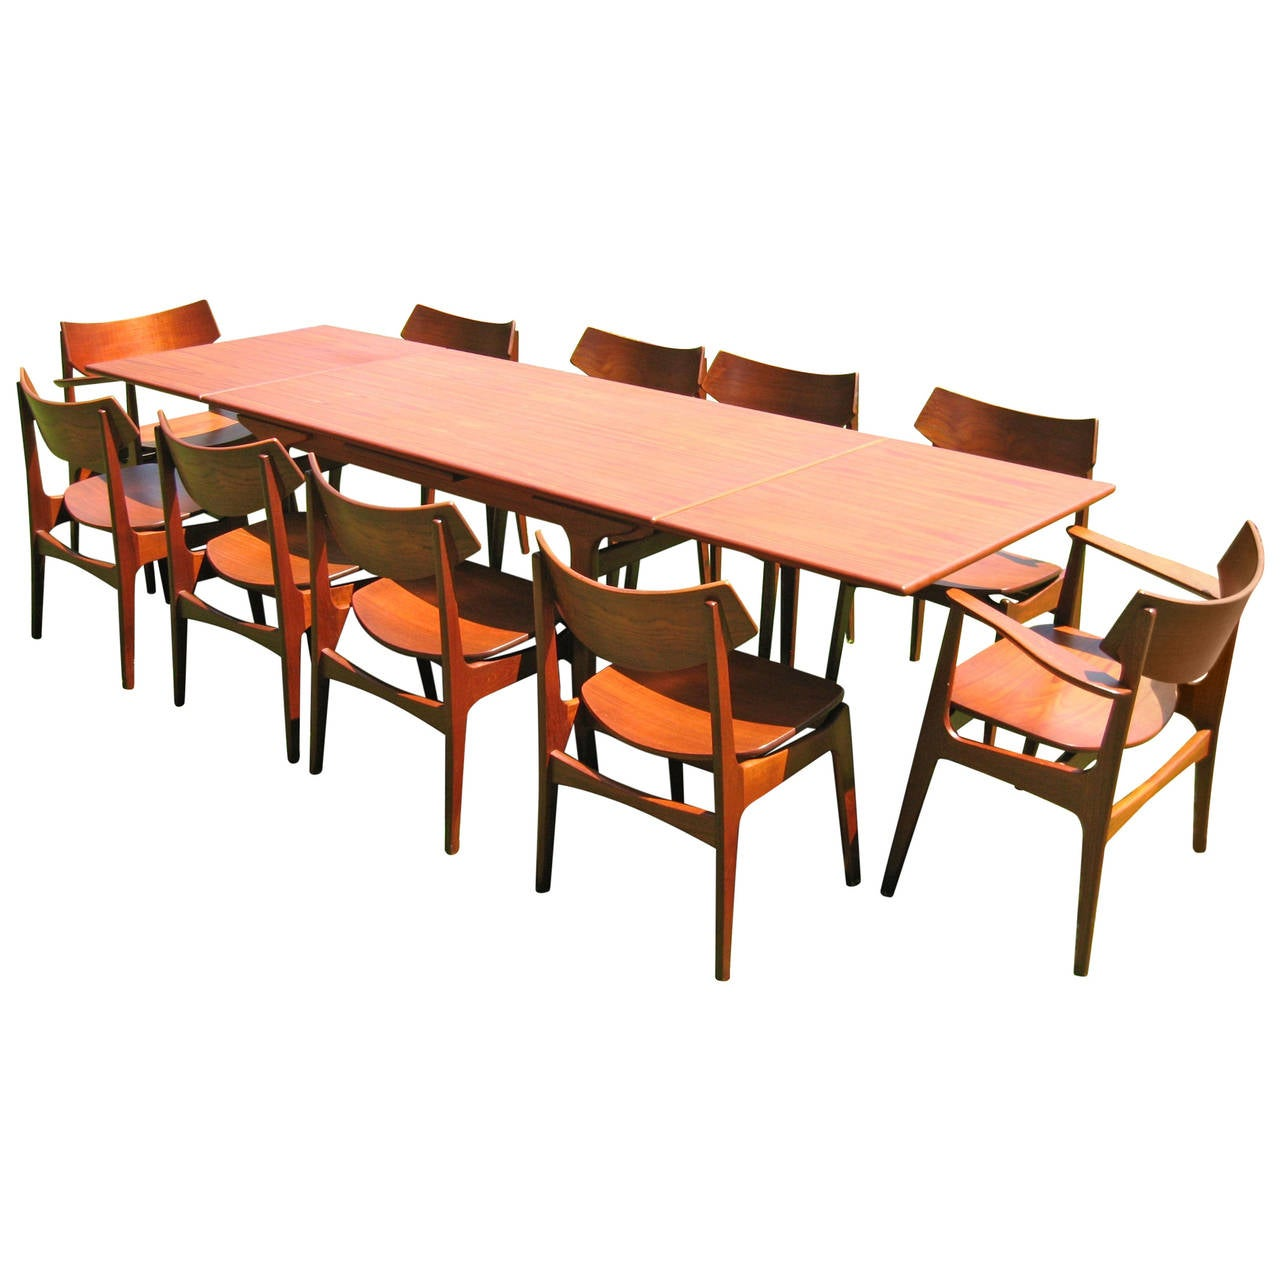 Teak danish modern dining room table with ten chairs by for Danish modern dining room table